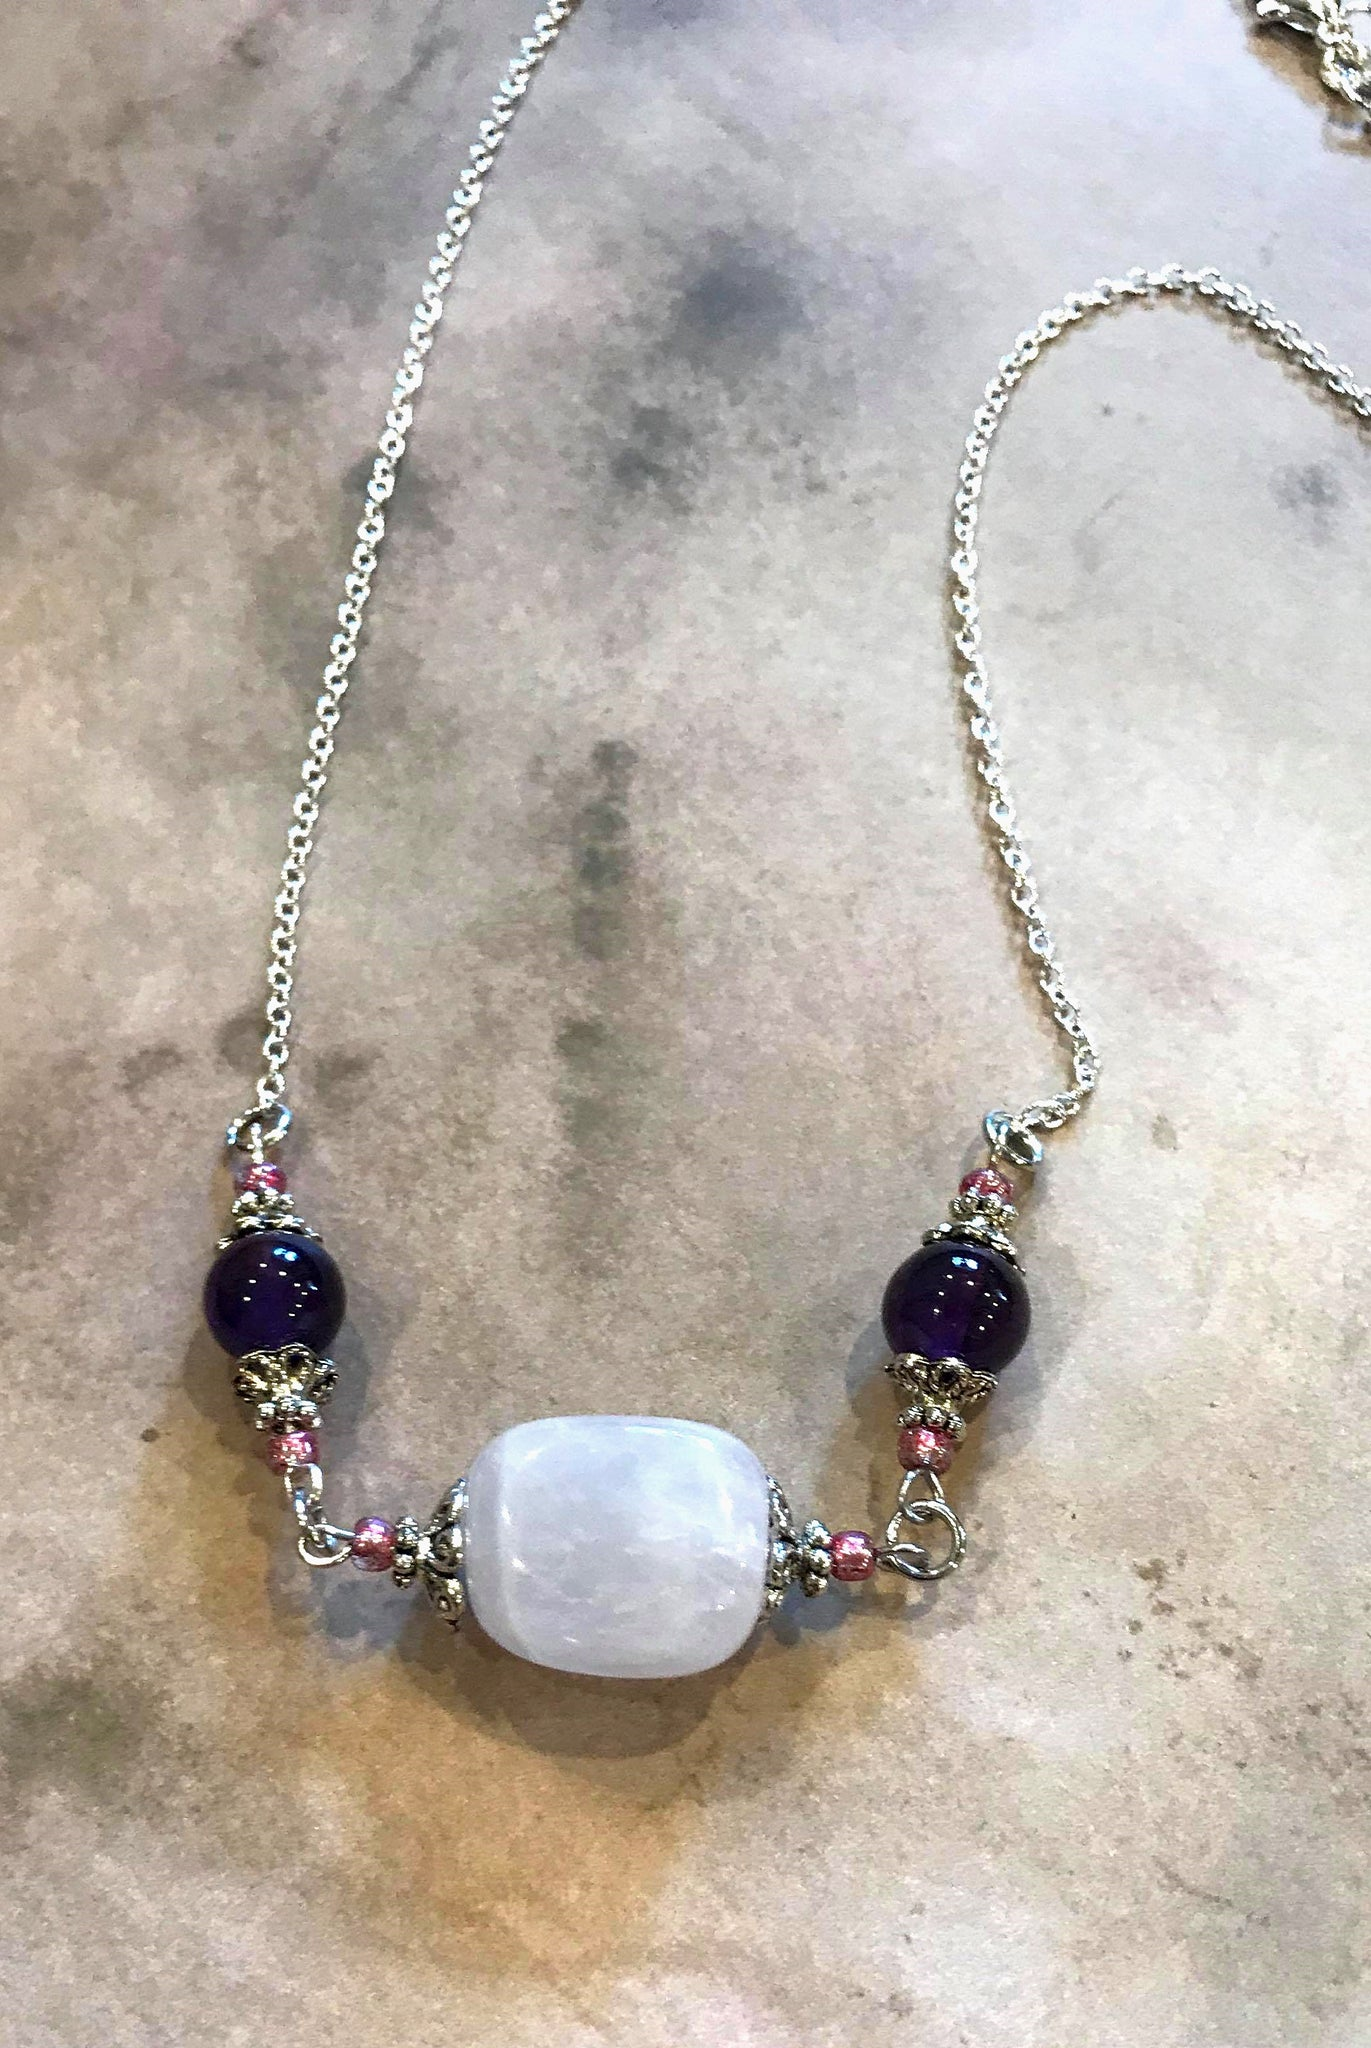 Handmade Rose Quartz Necklace